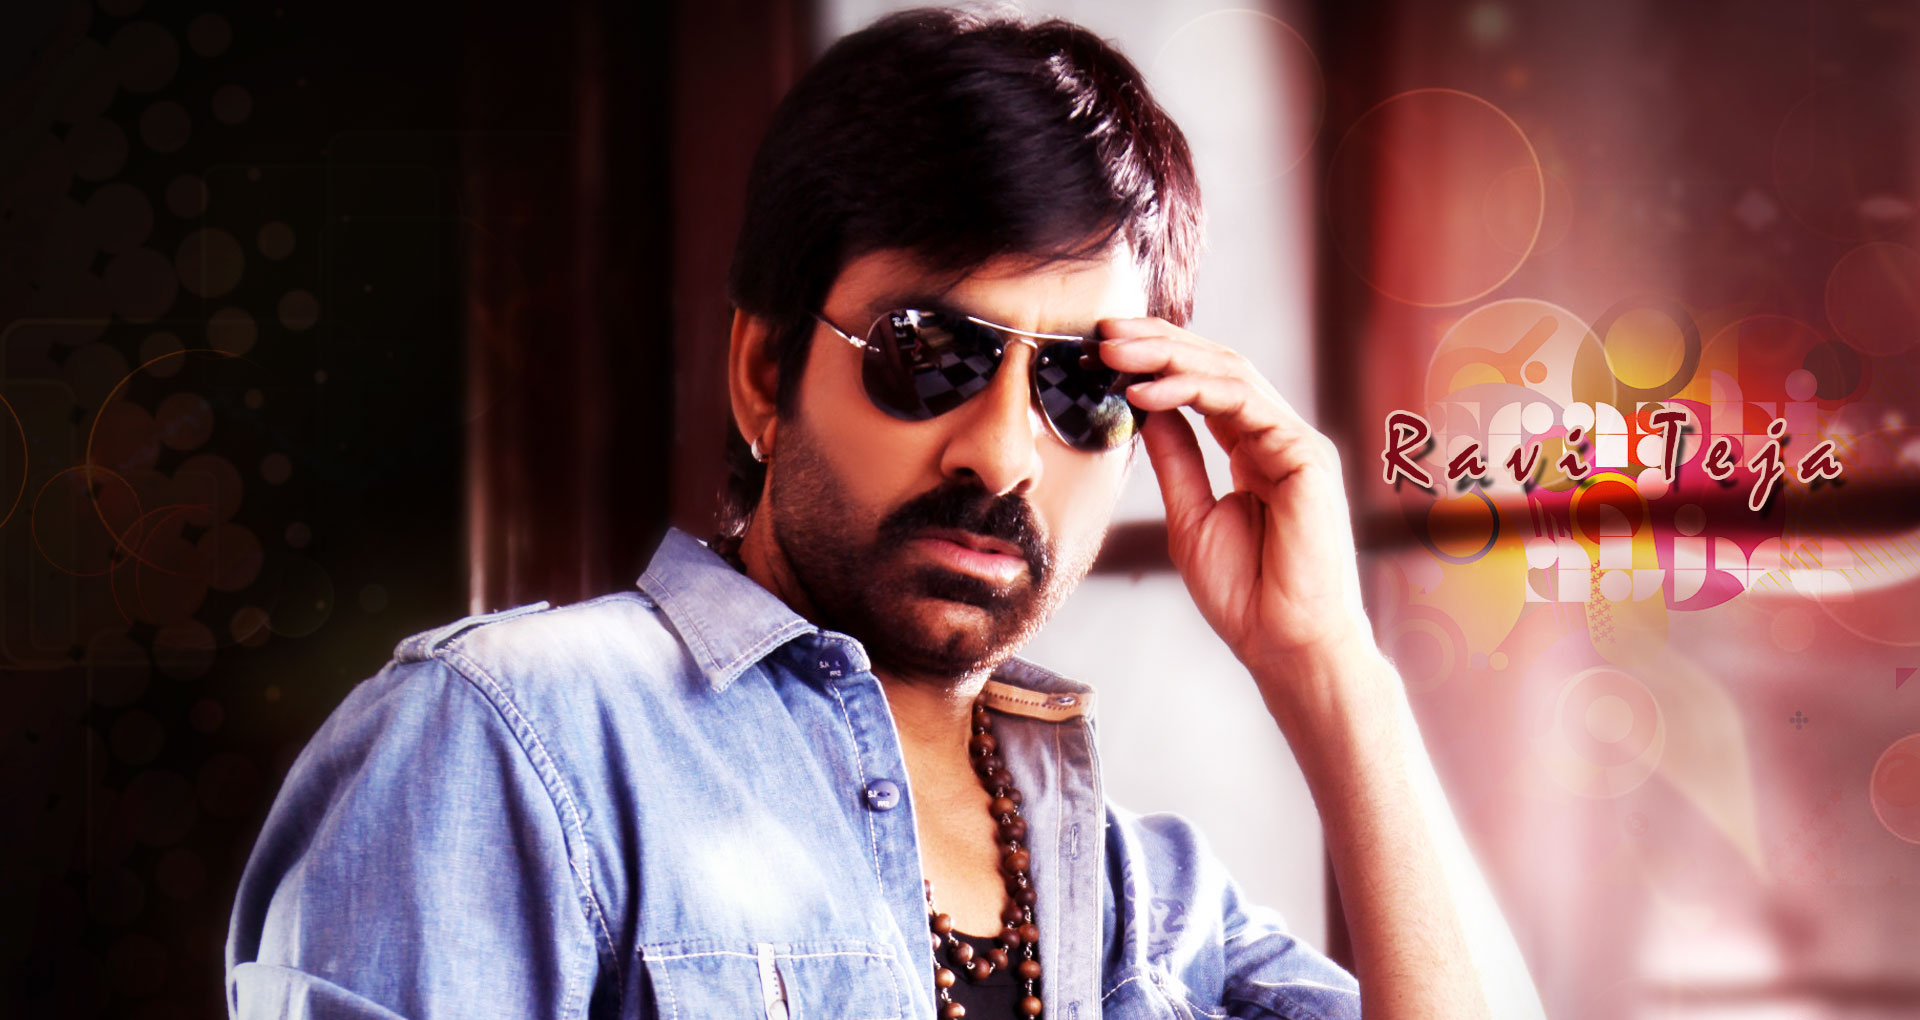 ravi teja wallpapers | ravi teja hd wallpaper download